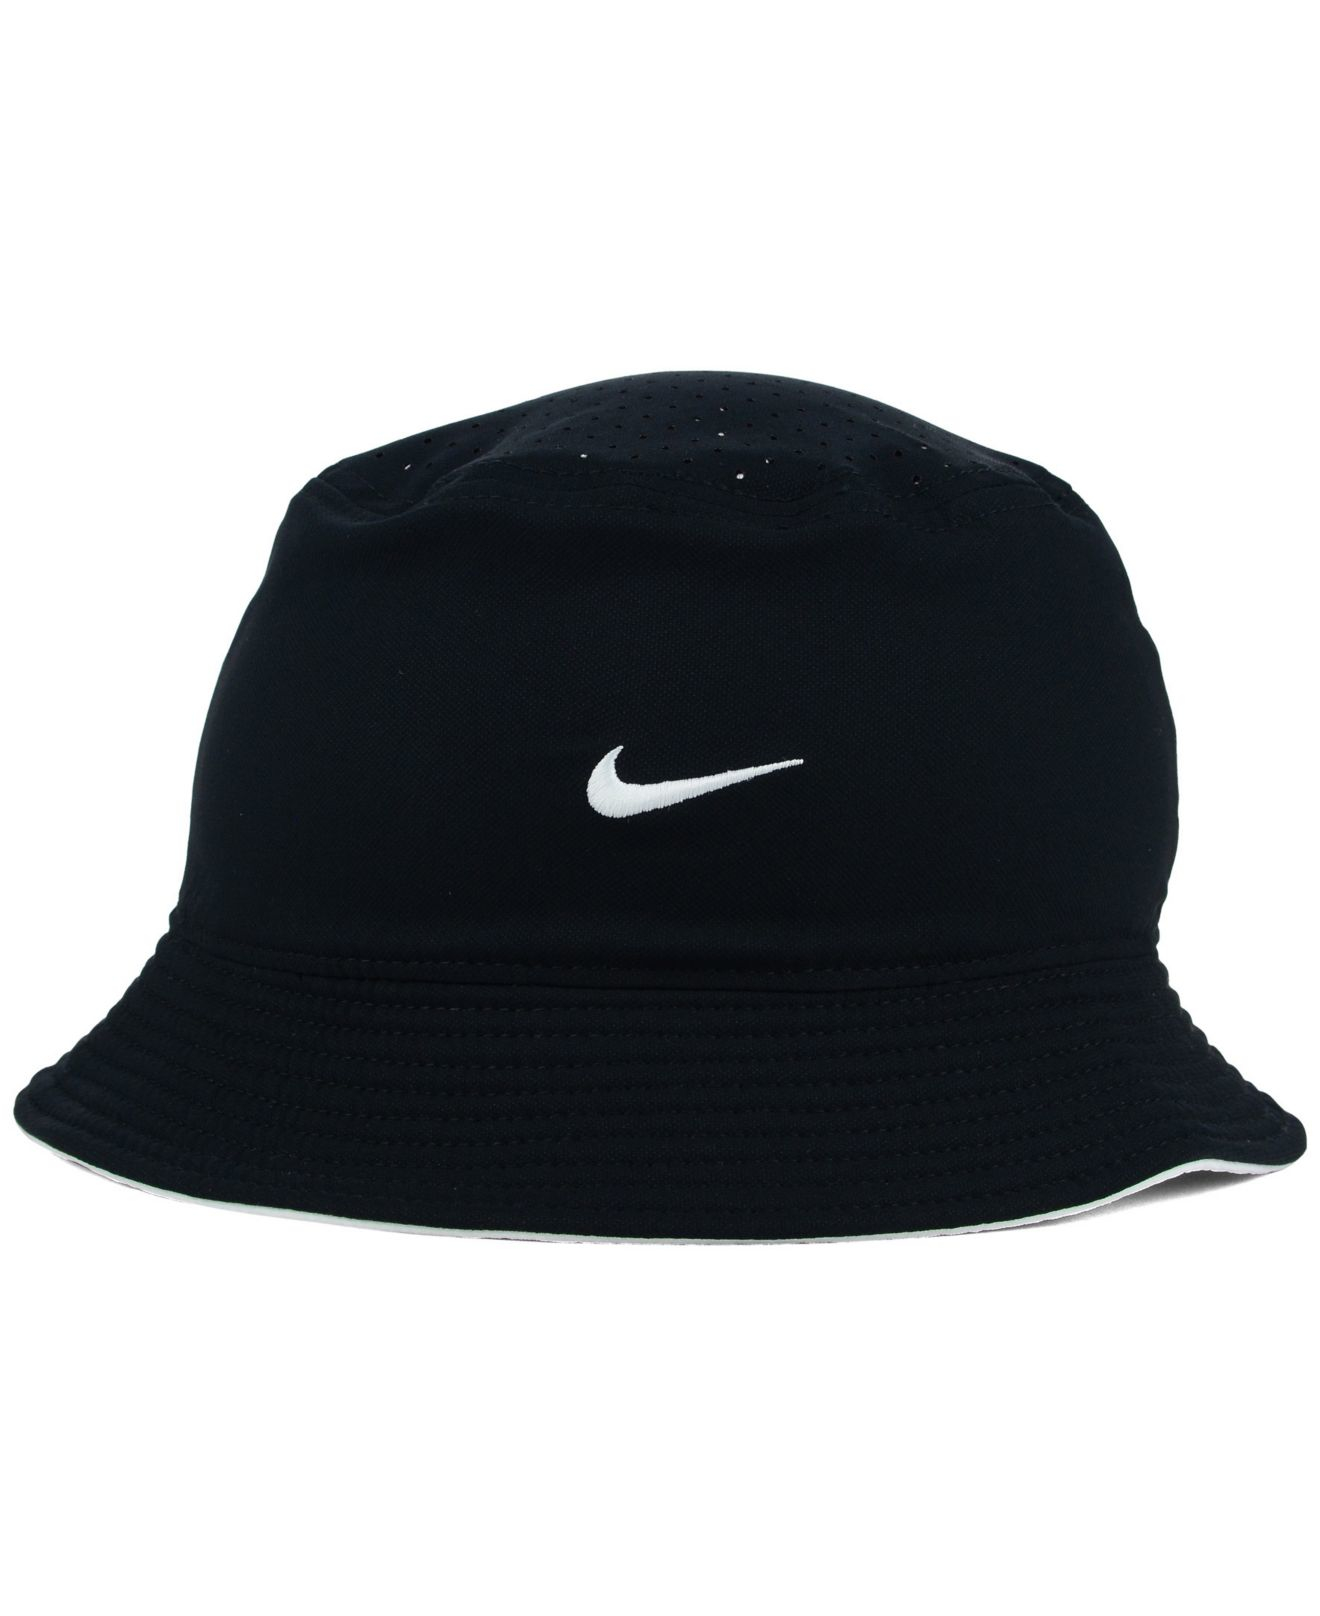 Lyst - Nike Chicago White Sox Vapor Bucket Hat in Black for Men 96e7df9ae6e